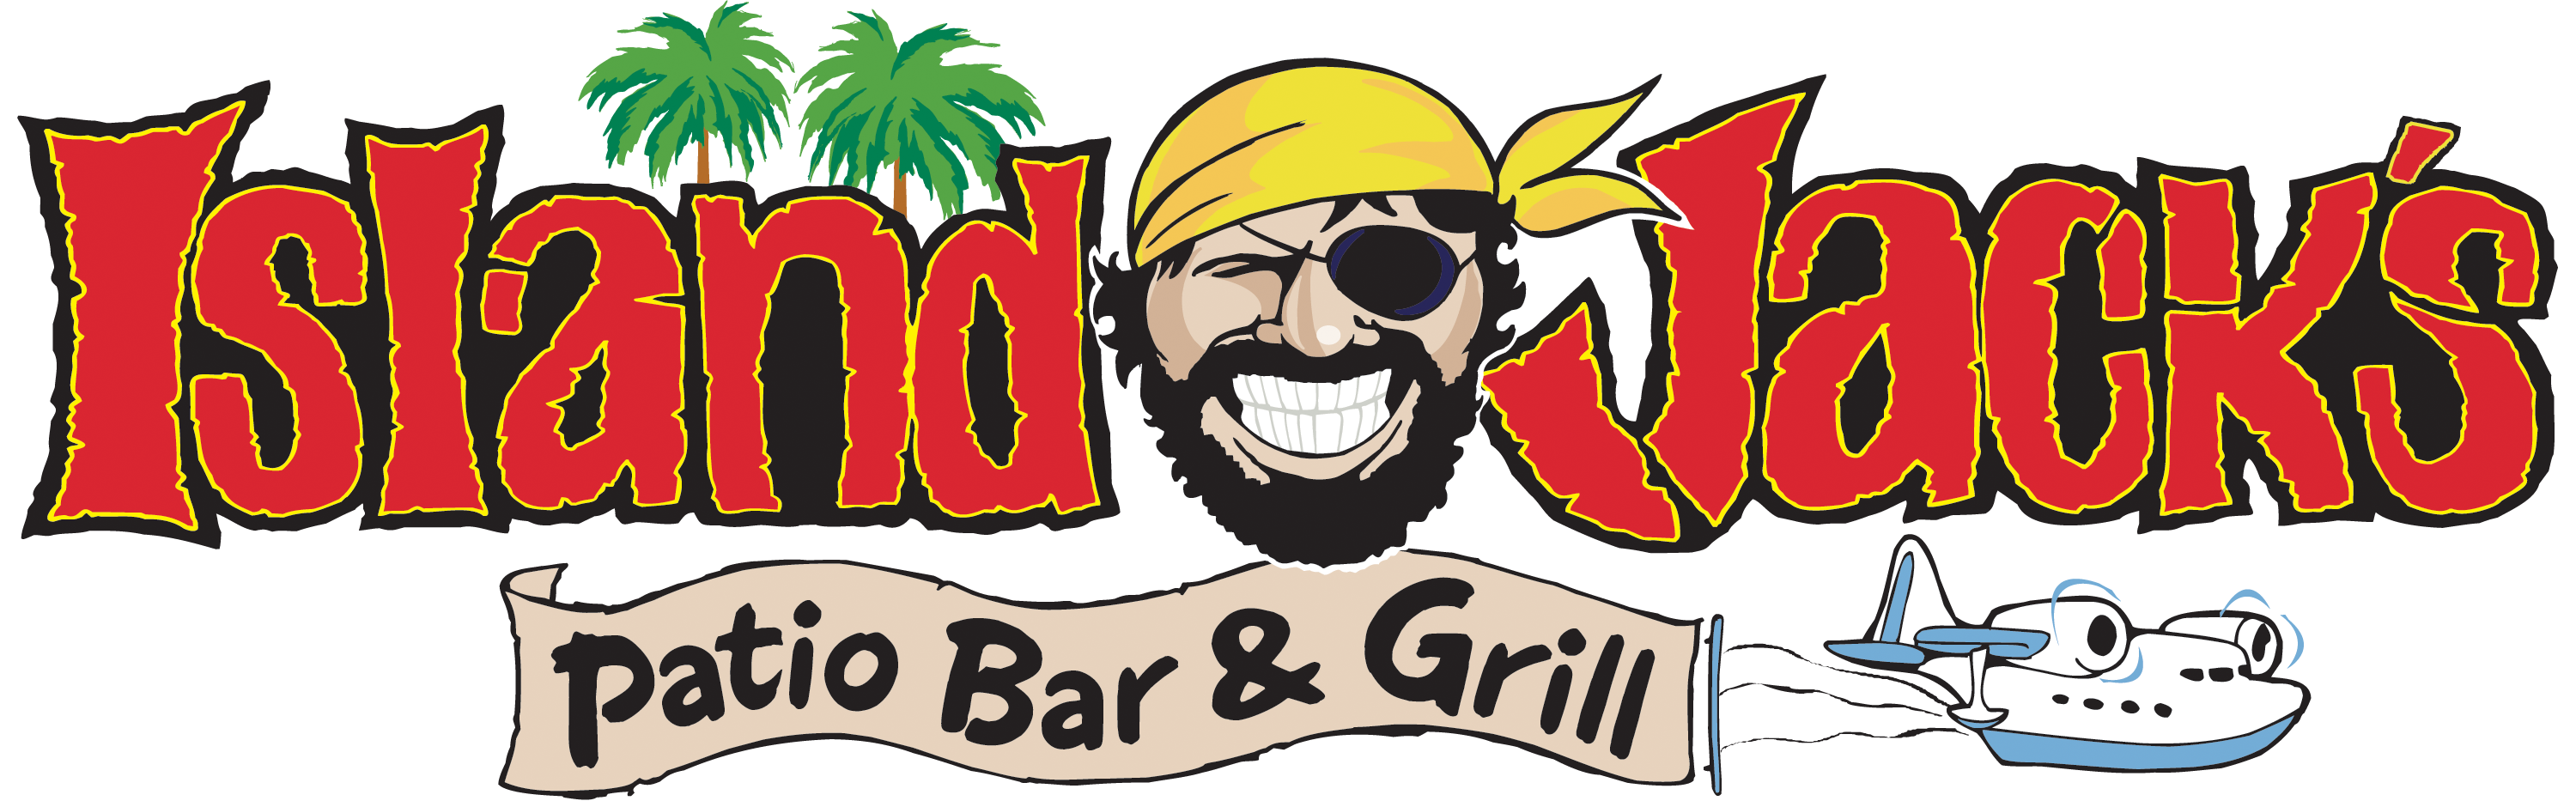 Island Jack's Patio Bar & Grill